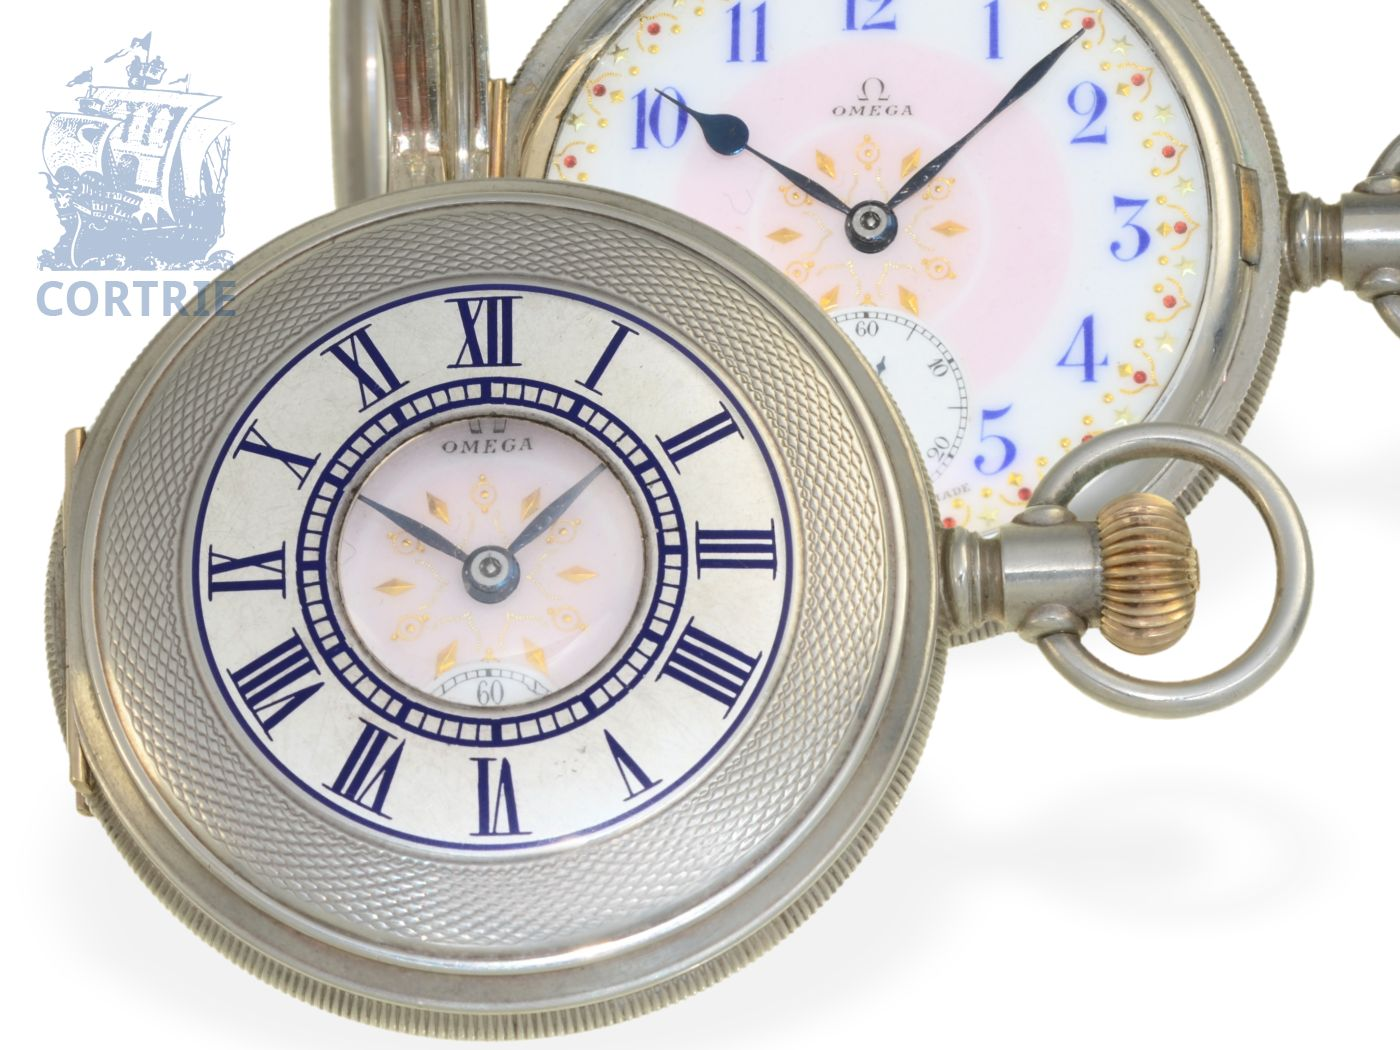 Pocket watch: very rare export watch by Omega, for American market, pink enamel dial Fancy Dial, special quality, ca. 1905-